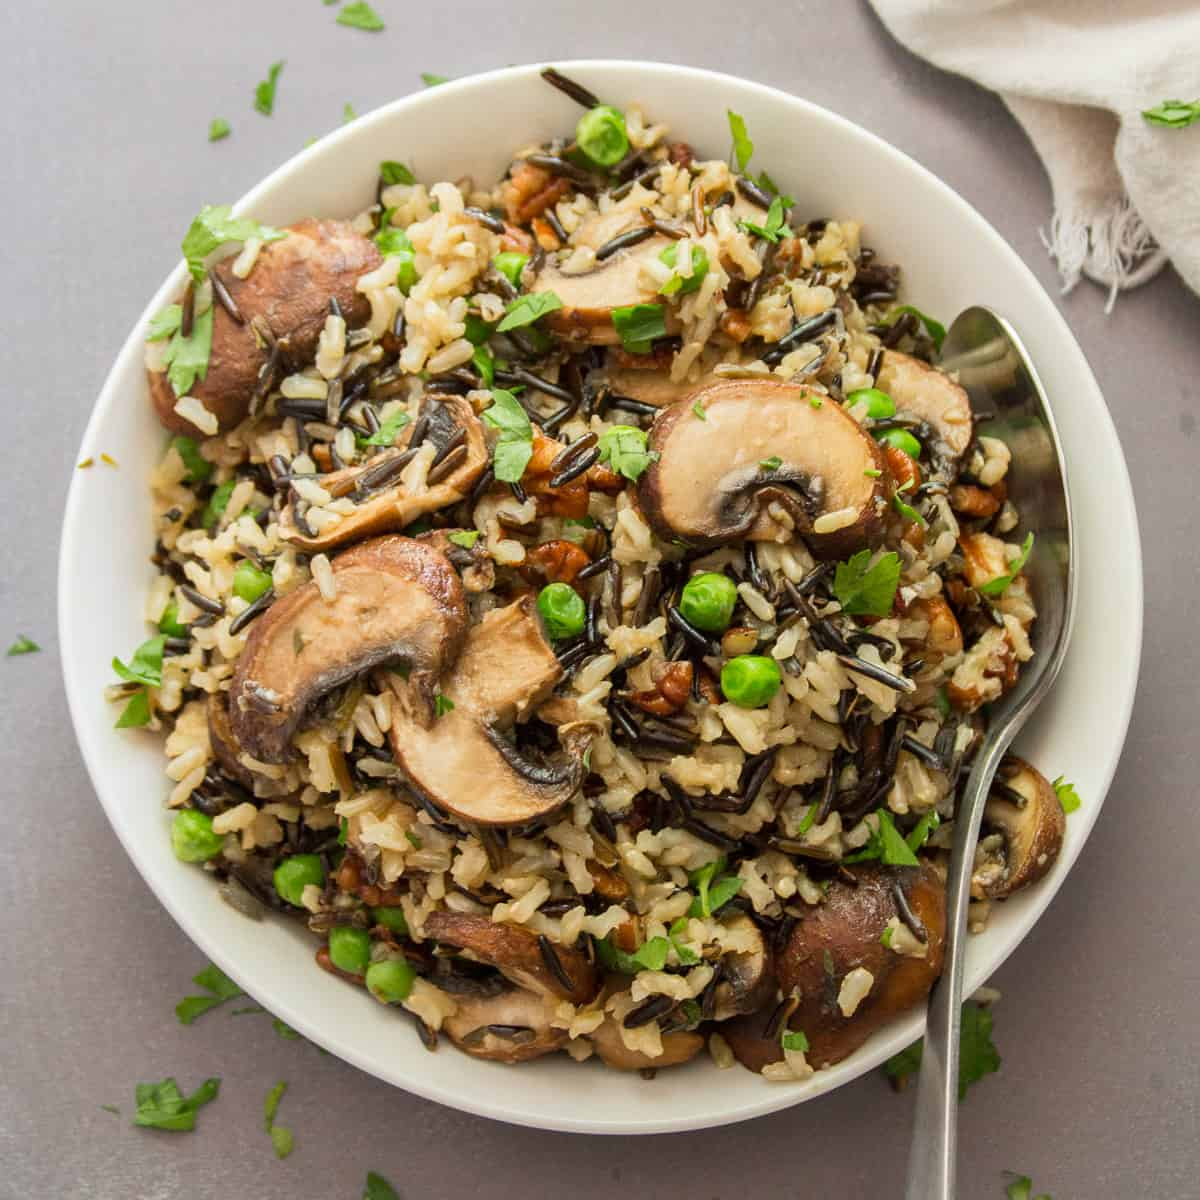 A Bowl of Wild Rice Pilaf with Mushrooms and Pecans with Serving Spoon